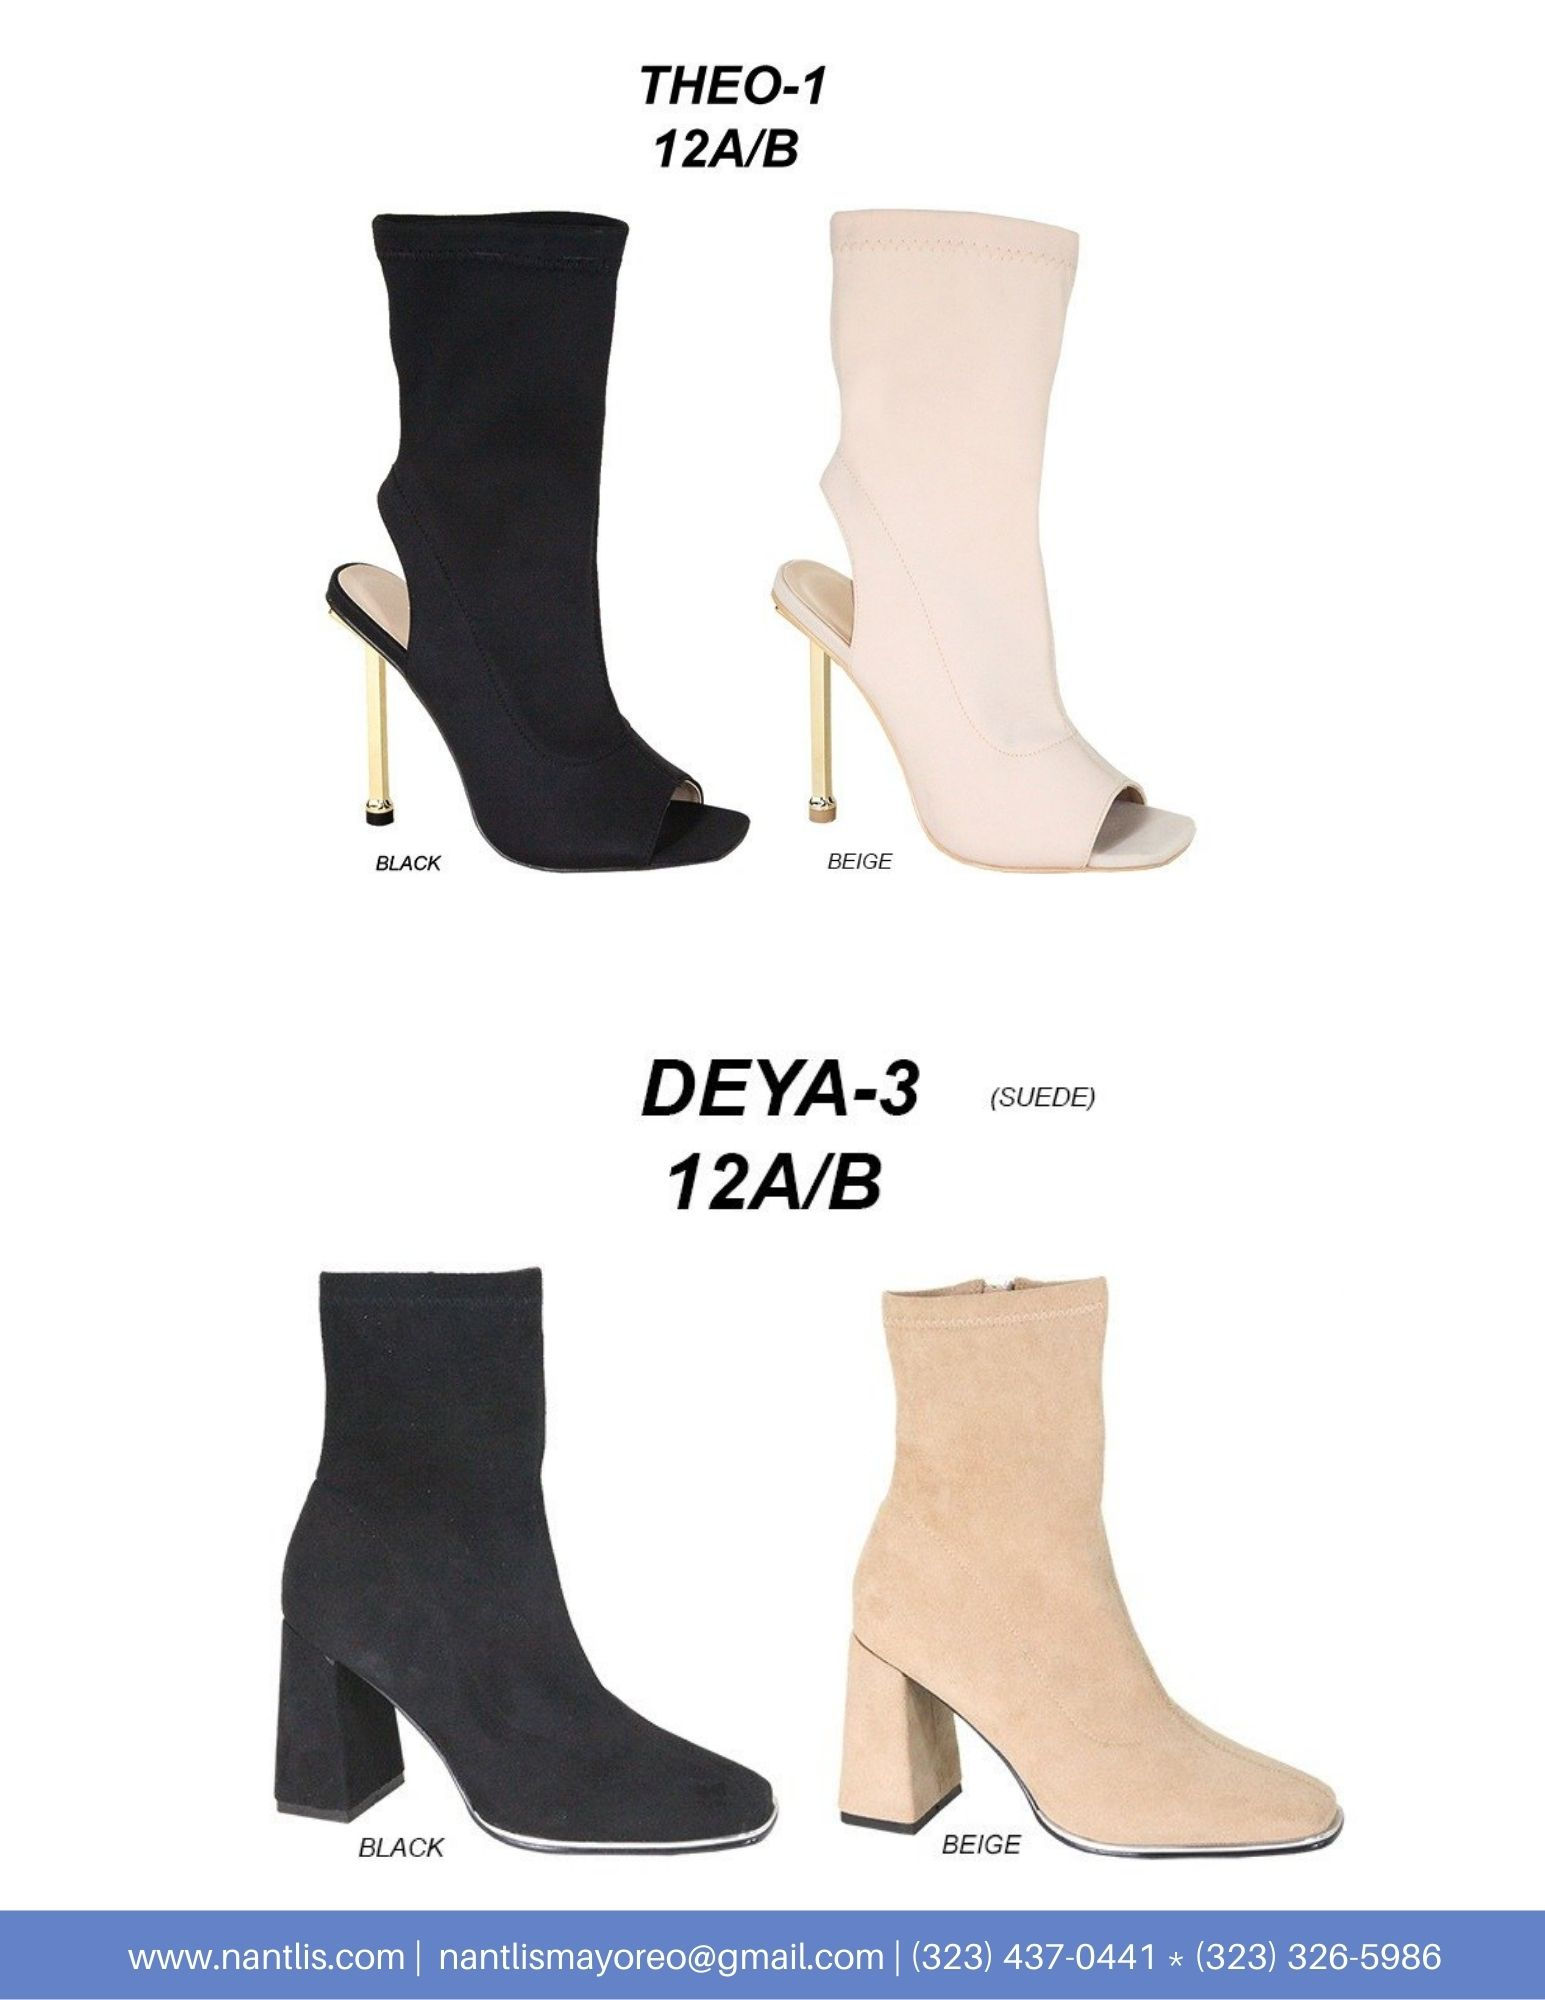 Nantlis Vol AN22 Botas Mujer mayoreo Catalogo Wholesale boots for women page 04